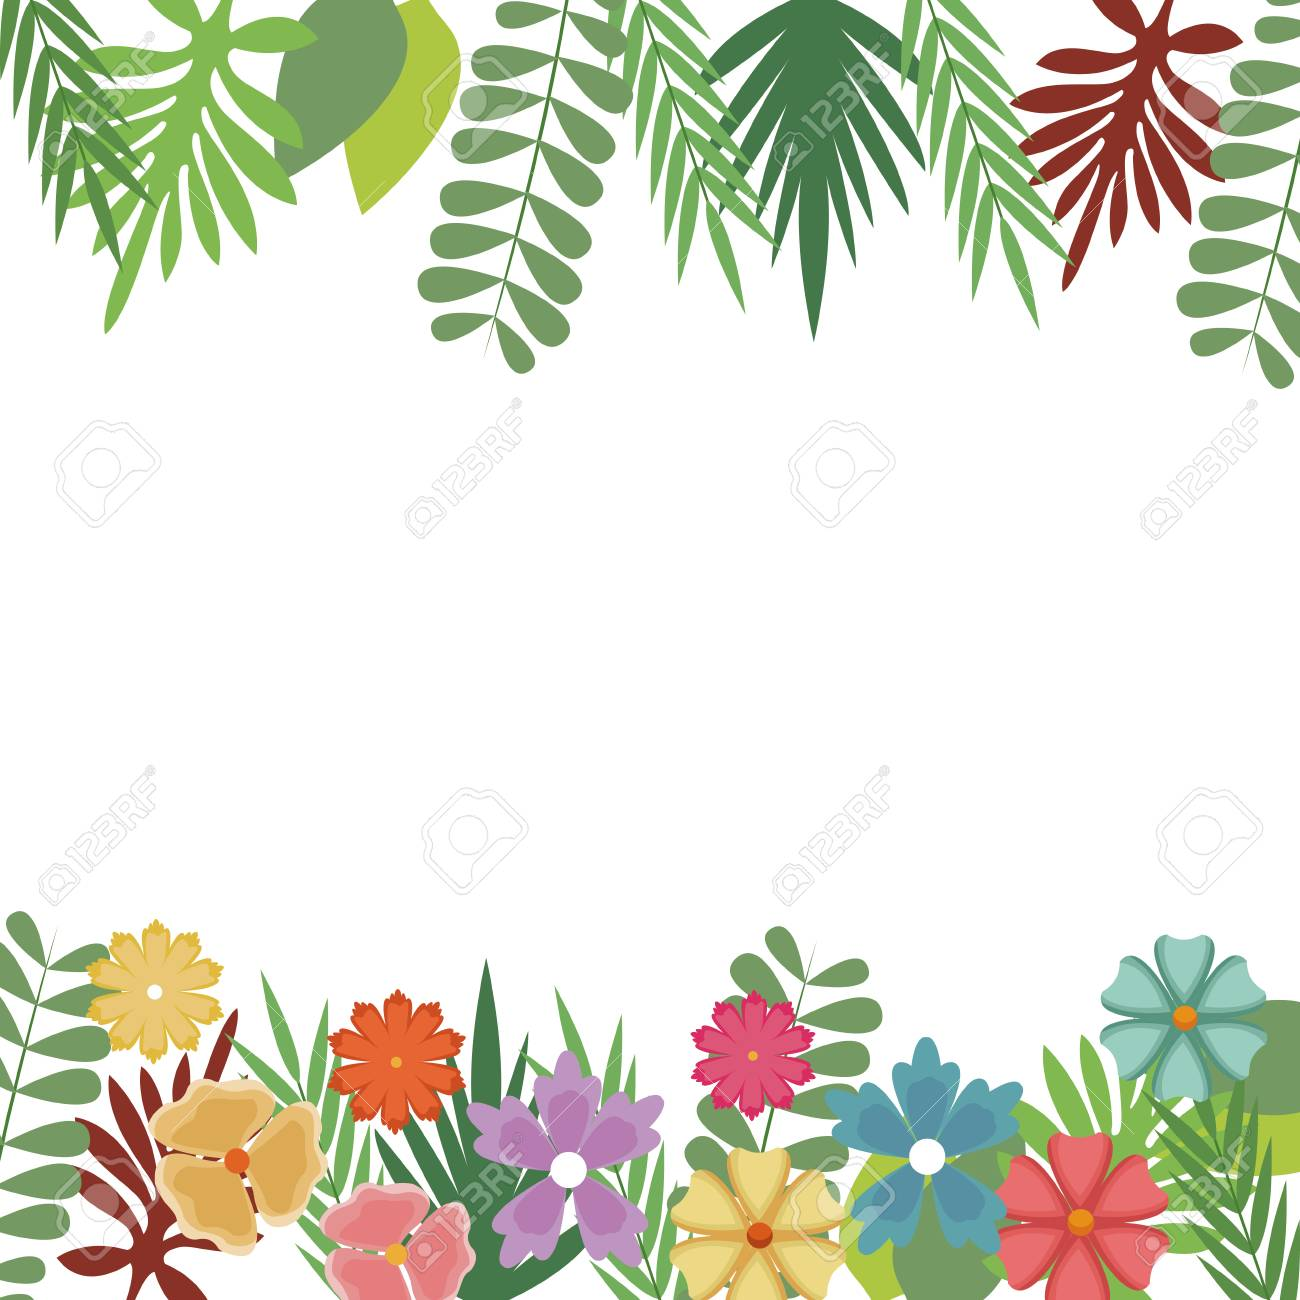 Flowers Foliate Border With Leaves Blossom Garden Design Vector